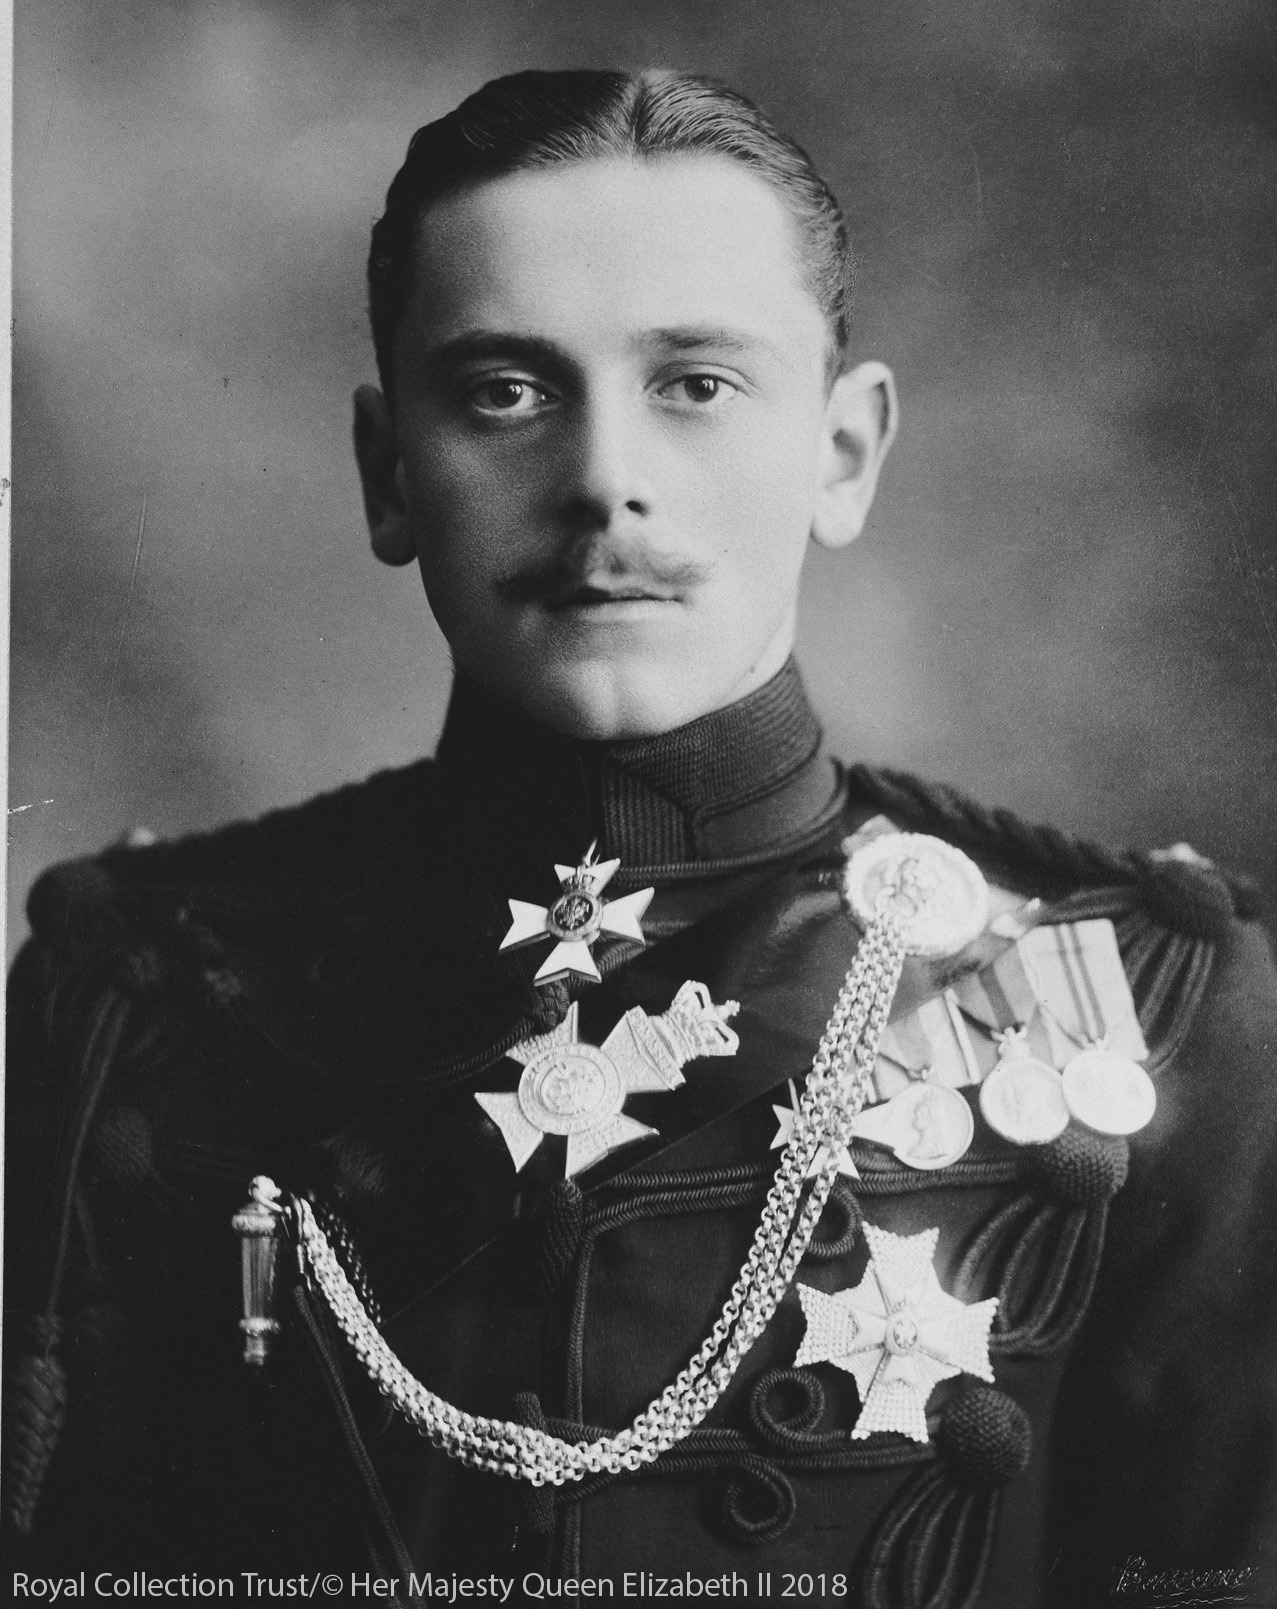 Prince Maurice of Battenberg